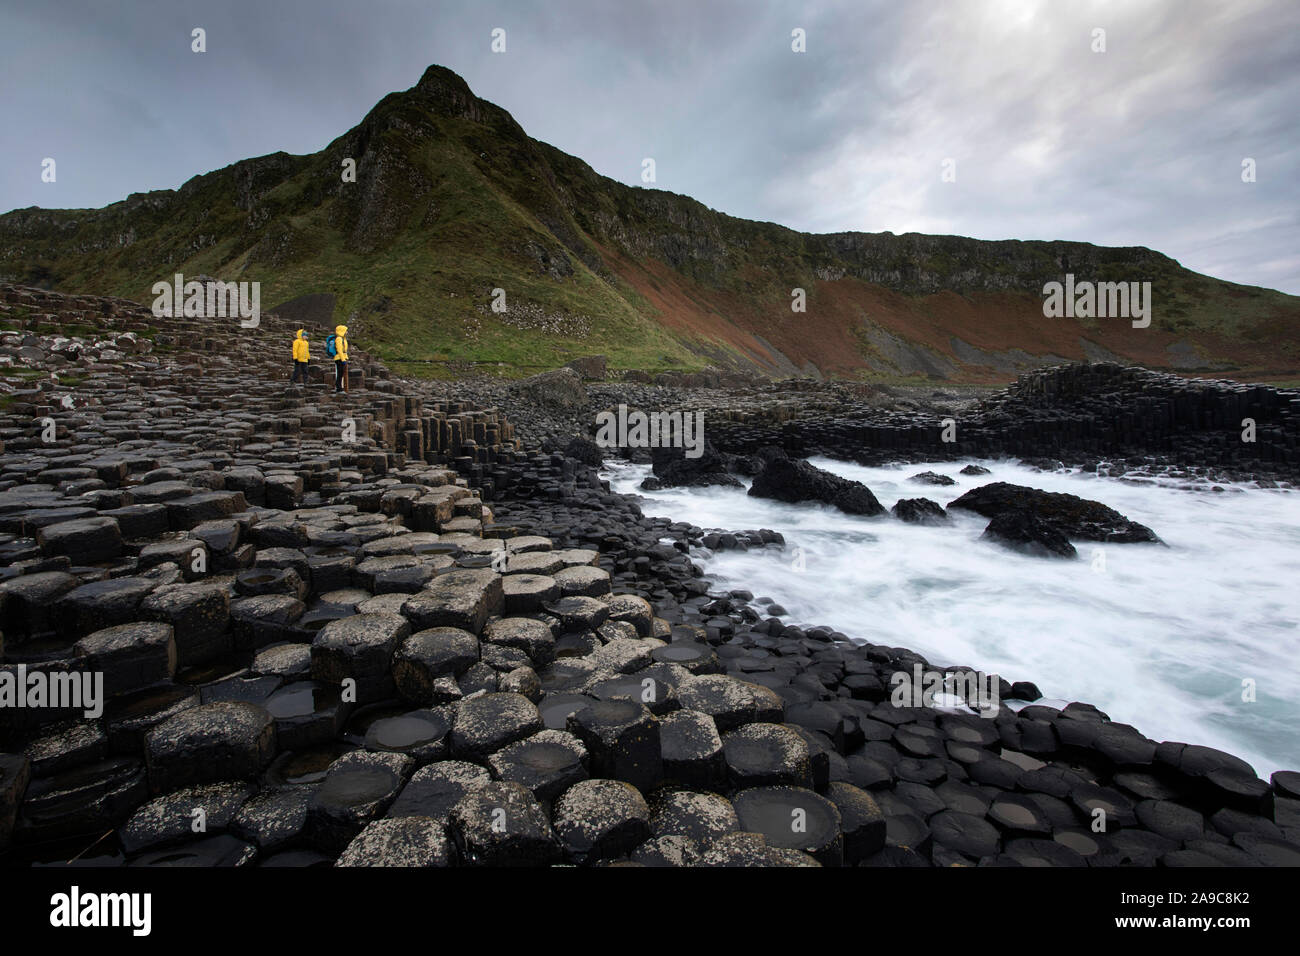 Mother and son standing on pile of rock columns formation at Giant's Causeway, Co. Antrim, Northern Ireland Stock Photo